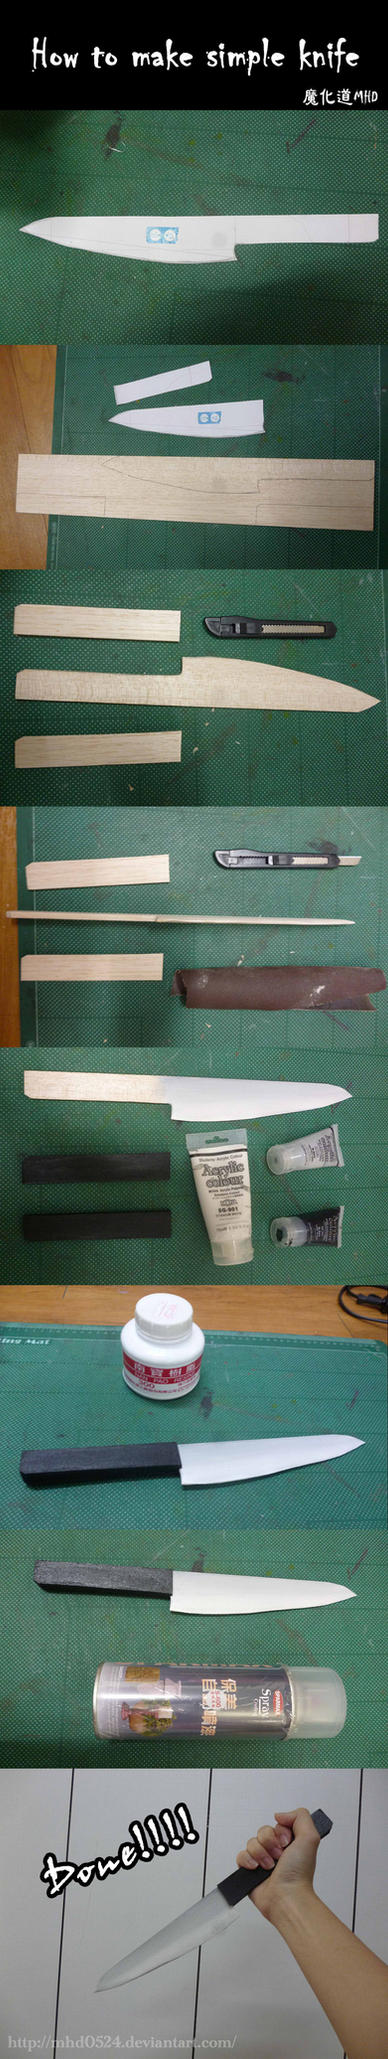 How to make a simple knife by MHD0524